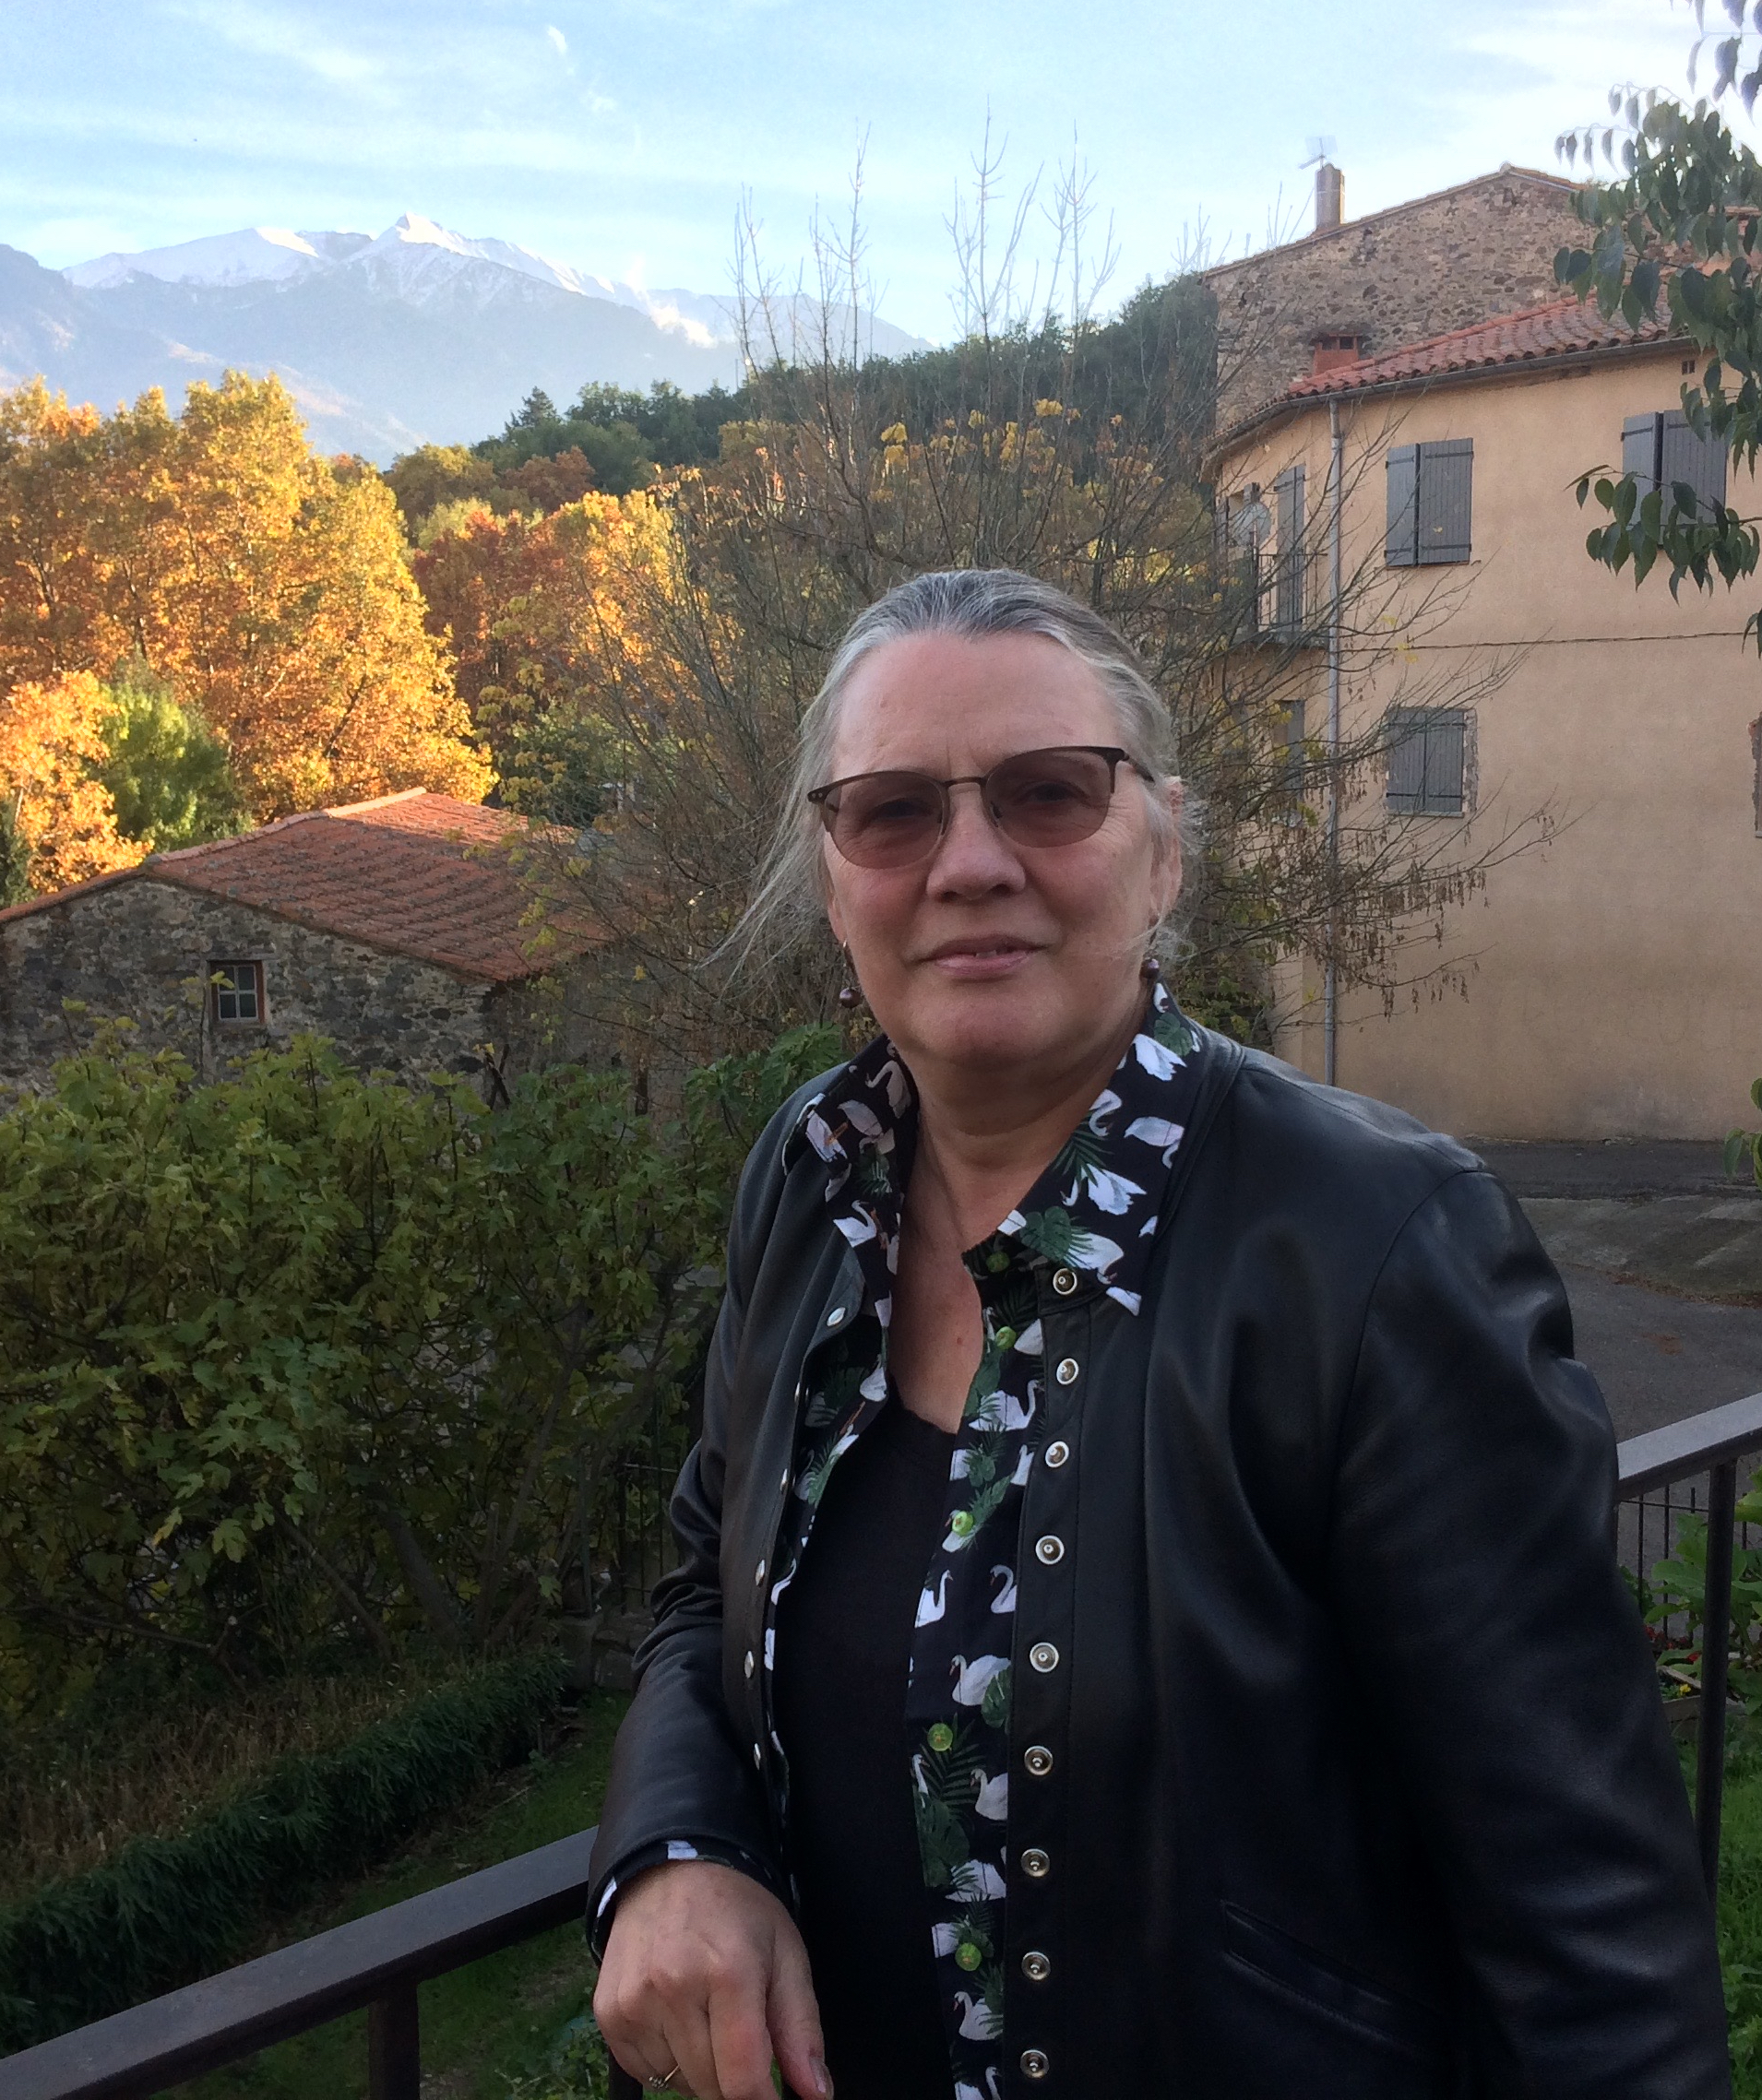 2018 - Oct 14. Catllar, France with Canigou behind